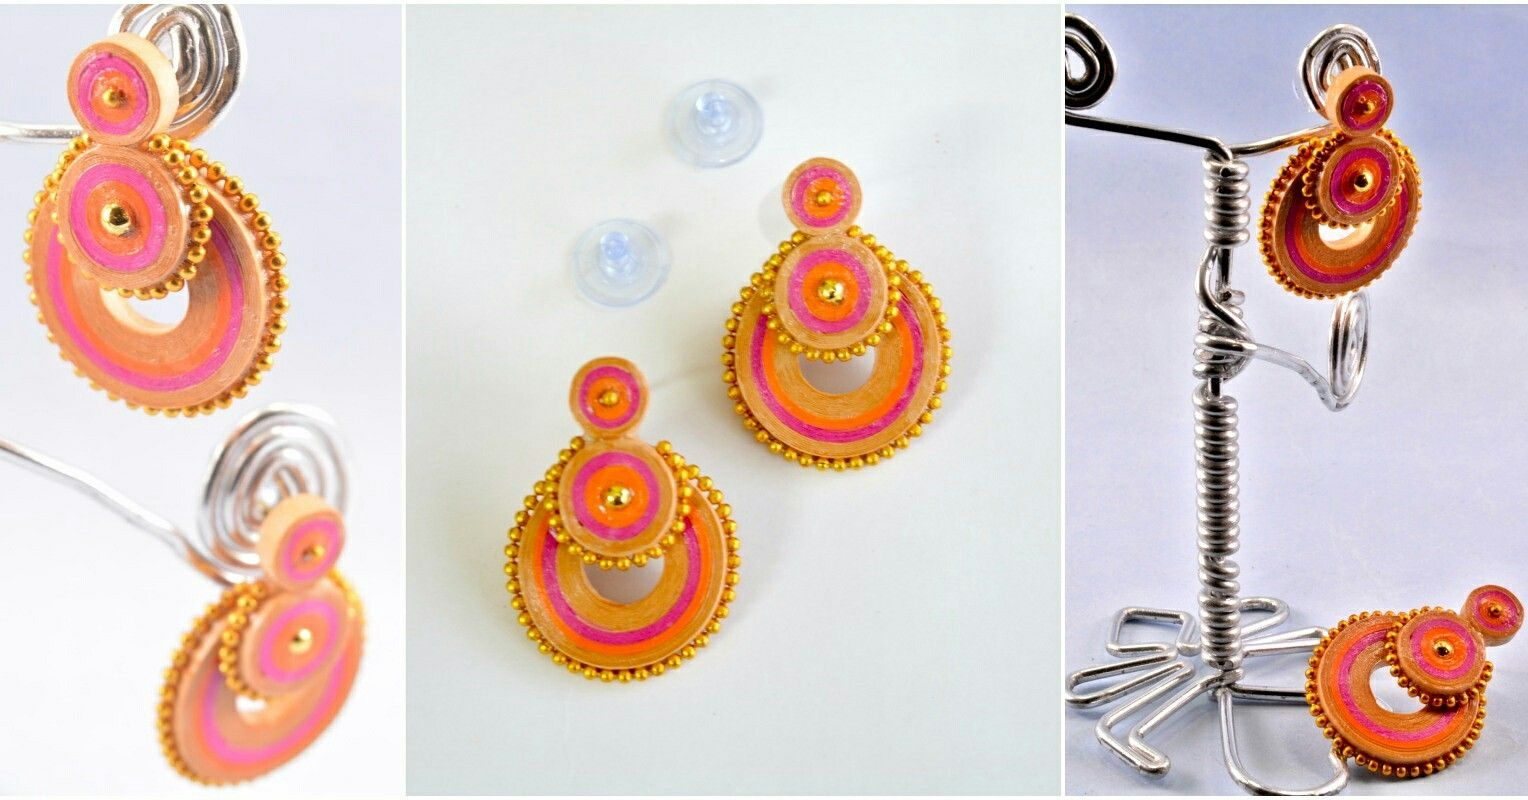 On this #festival season, lets make it more colorful by wearing #lightweight #colorful #jewelry and totally #ecofriendly #Traditional #Studs #specially for #ladies. How are these studs friends? Please give your valuable comments